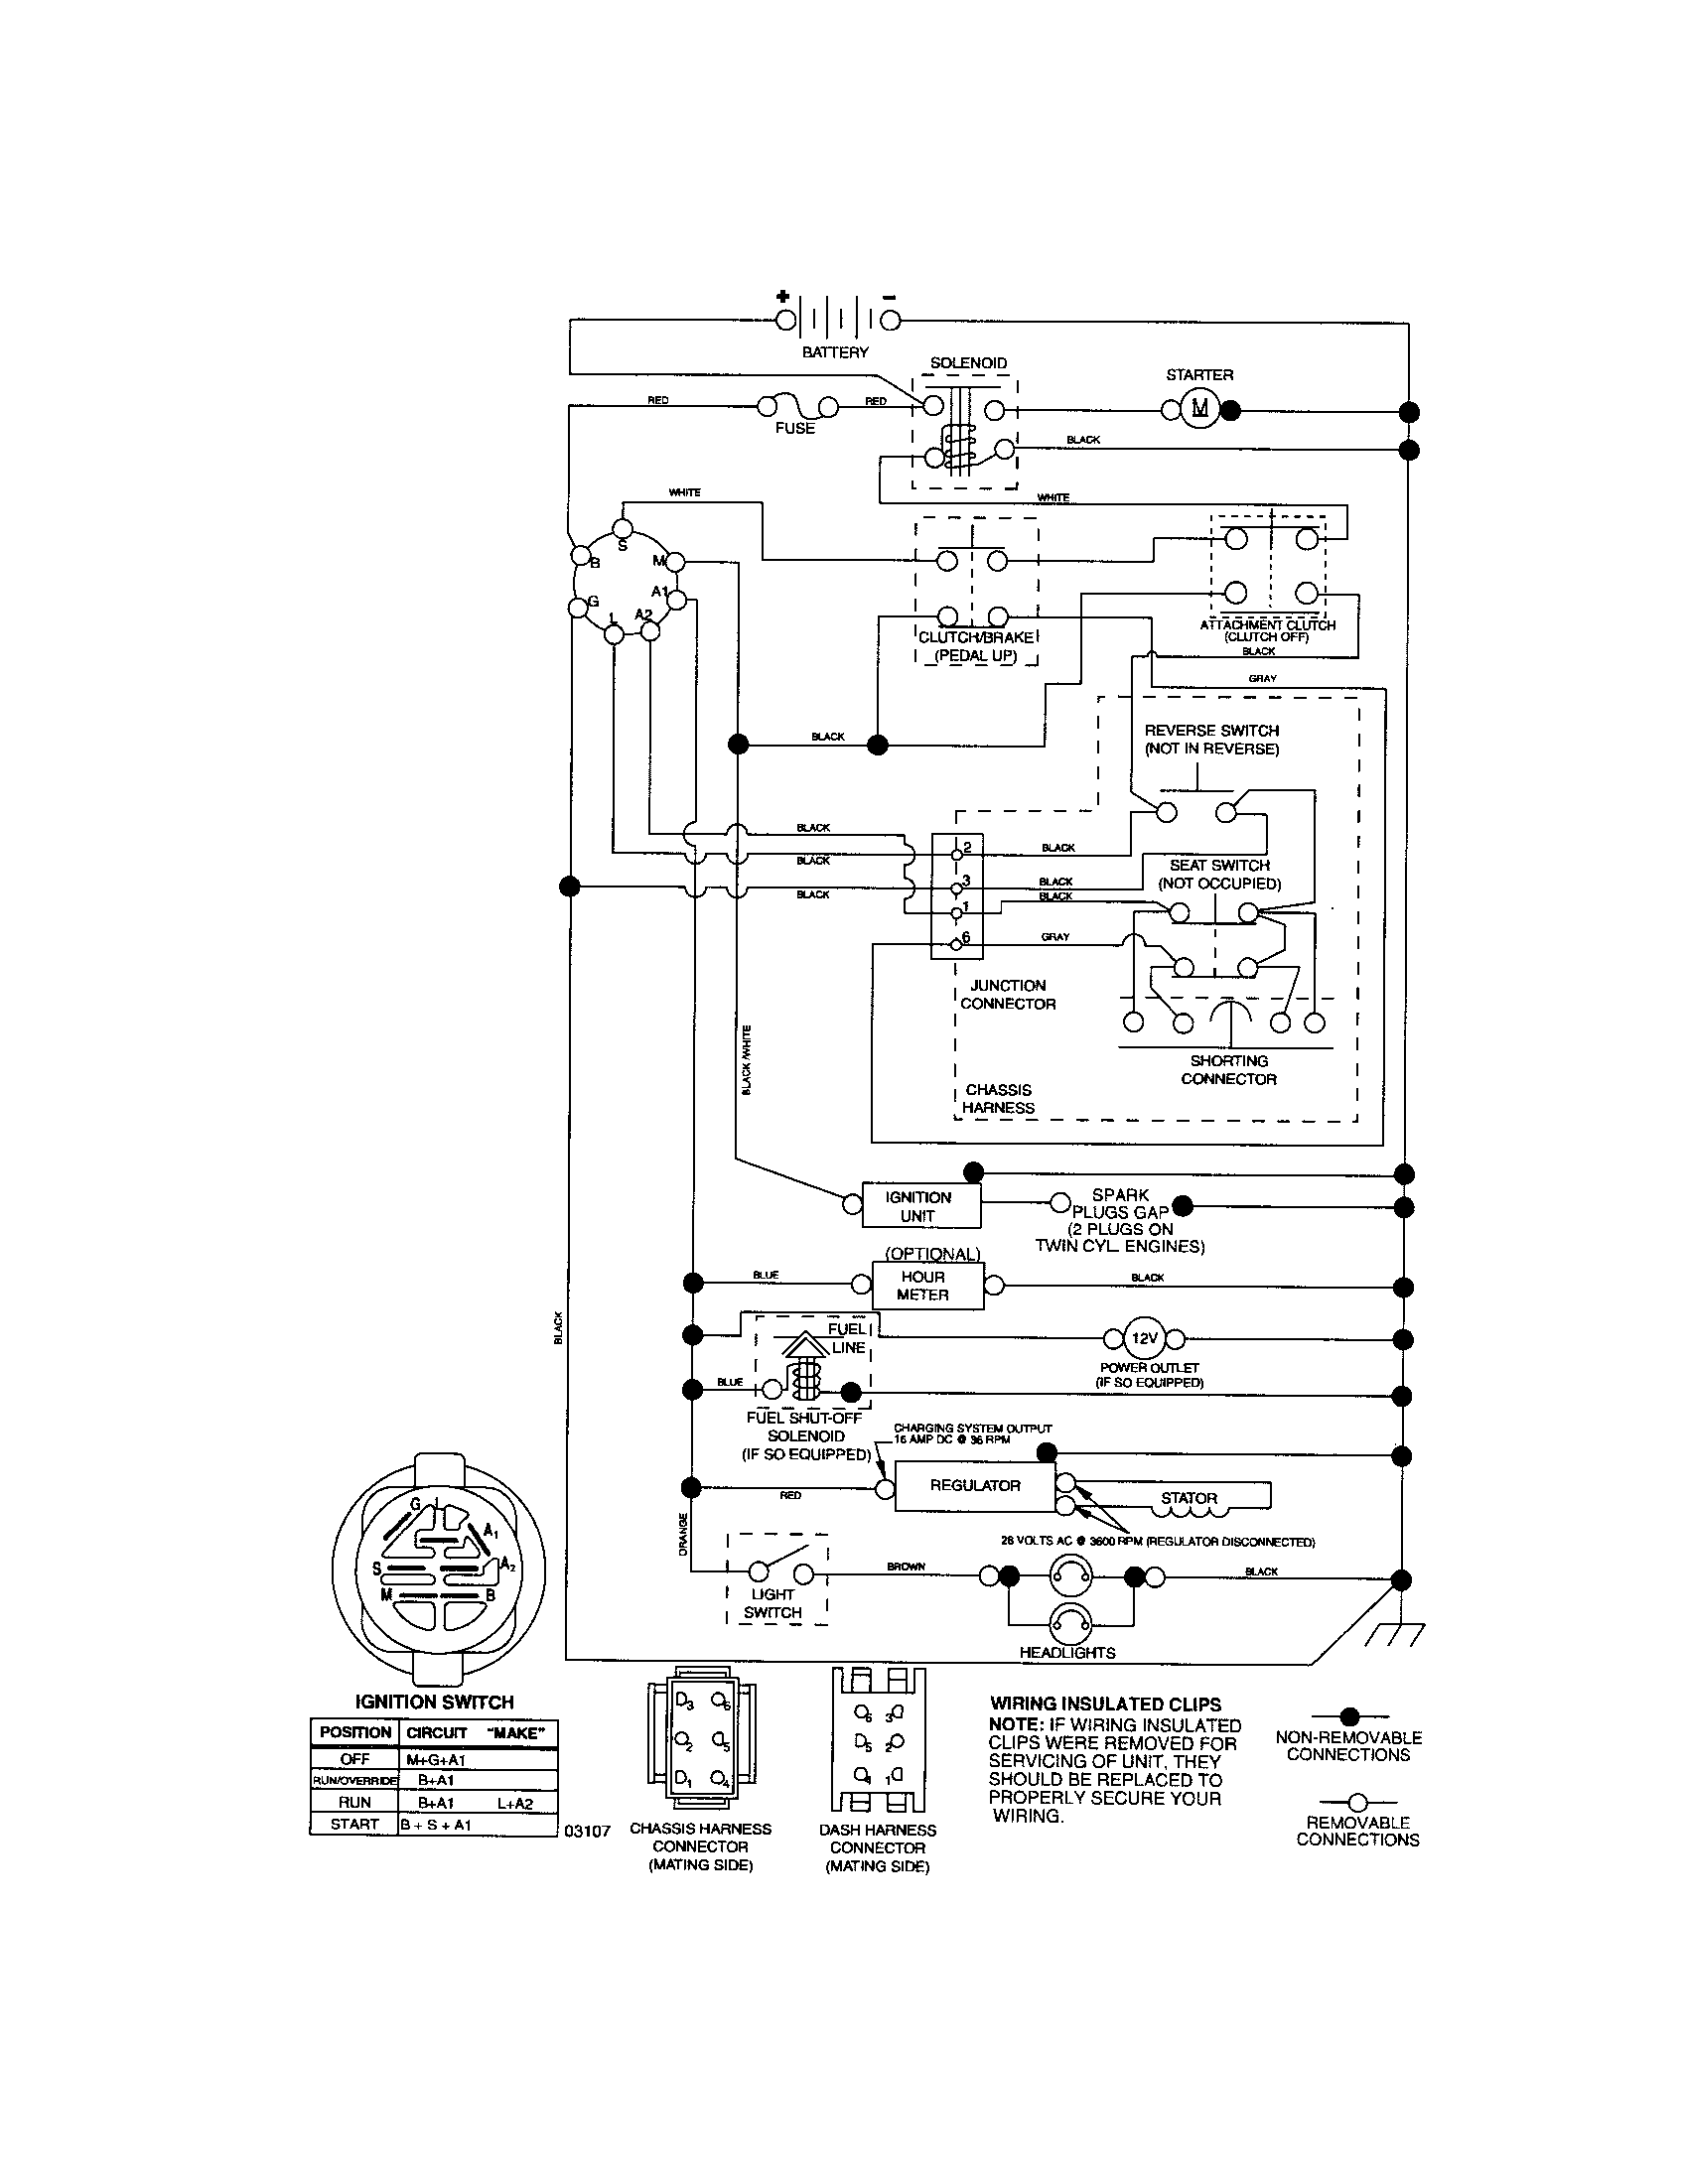 craftsman riding mower electrical diagram wiring diagram craftsman rh pinterest com Troy-Bilt Wiring Diagrams rover rancher ride on mower wiring diagram